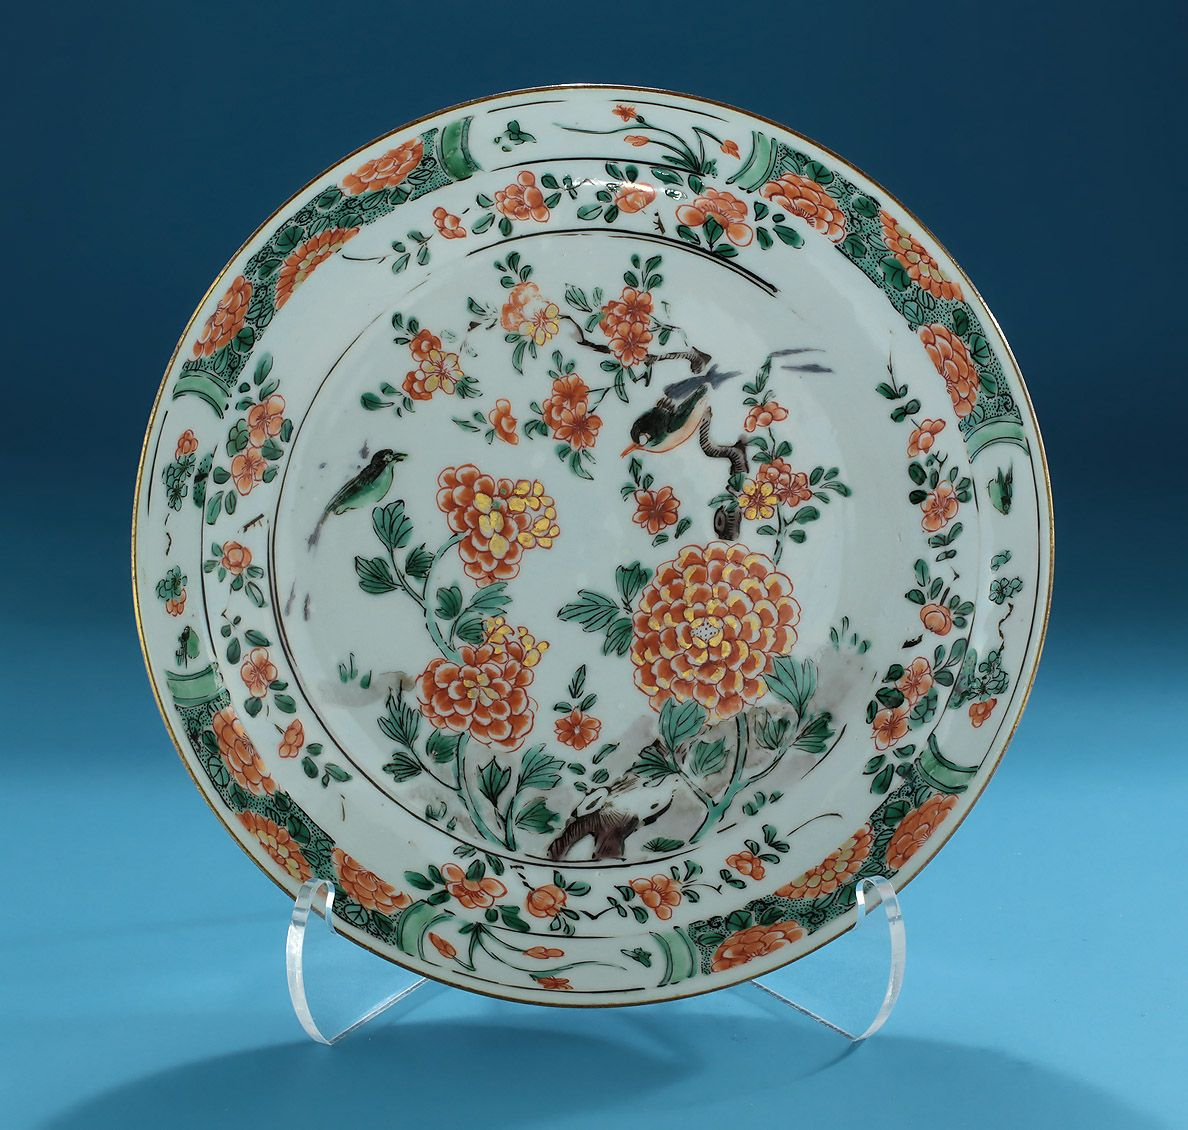 *FOR SALE* Click to read about the history and see more detailed images* CHINESE EXPORT FAMILLE VERTE DEEP DISH, Kangxi, c1700-1722